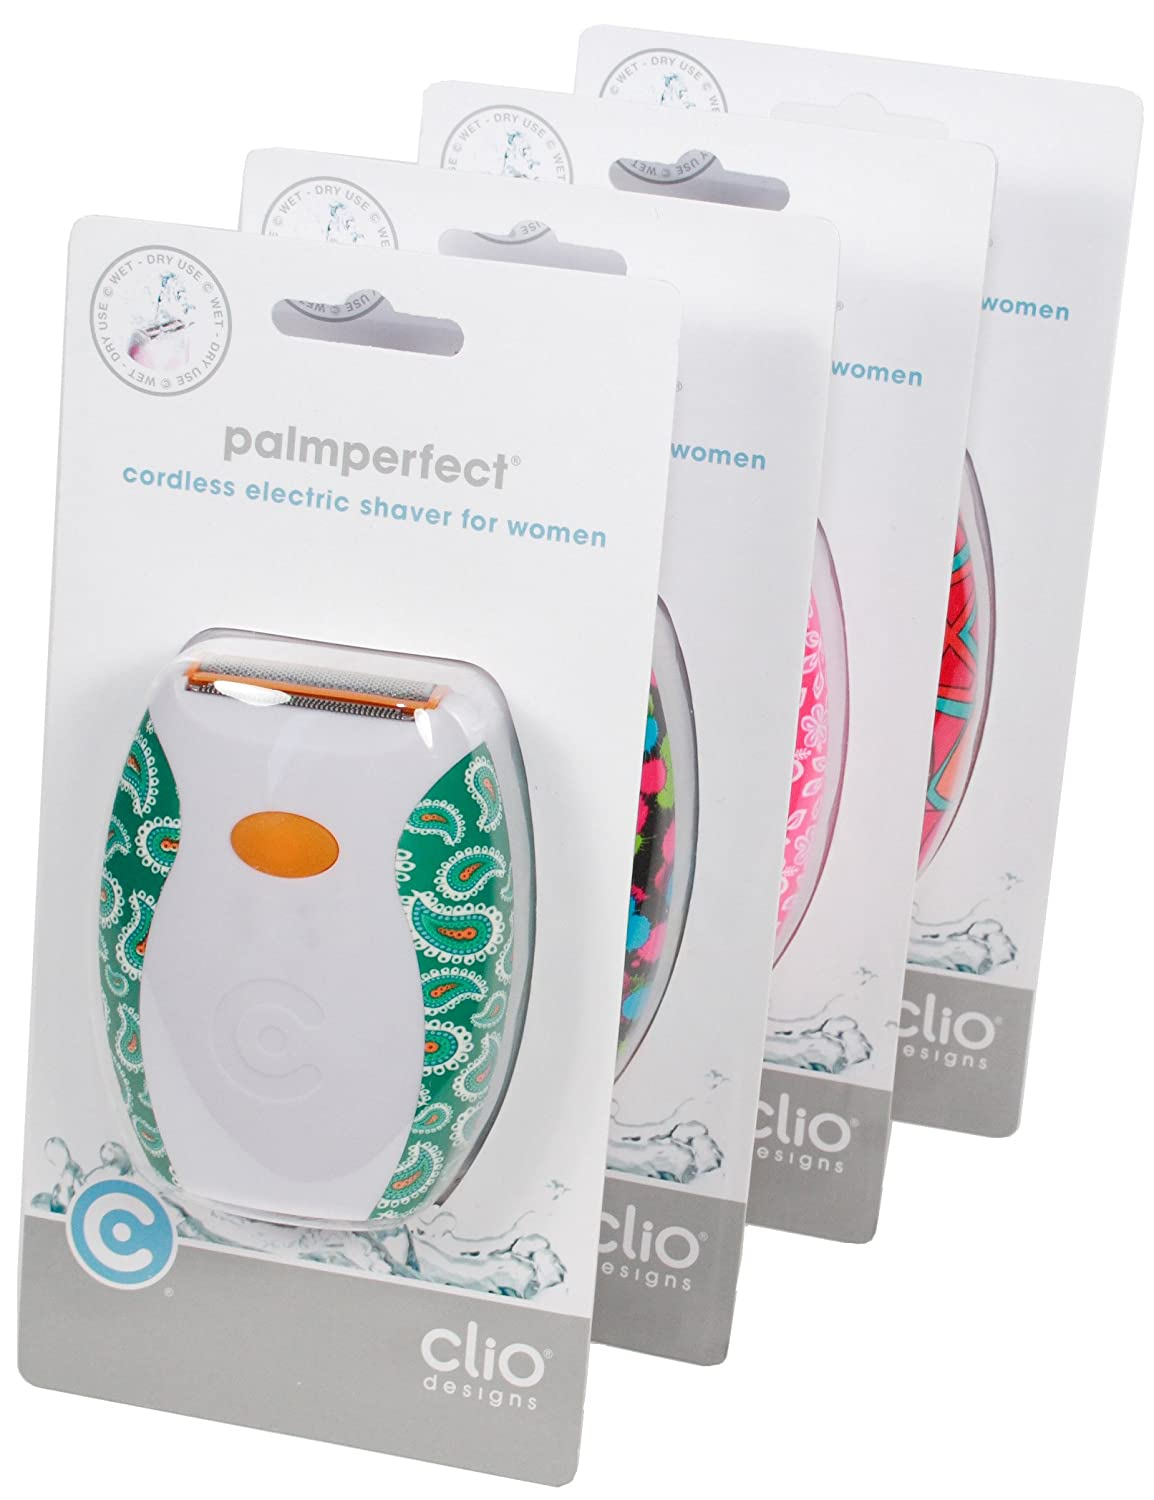 Clio Designs Palmperfect Electric Shaver in Patterns, Color and Pattern may vary 3801SSB